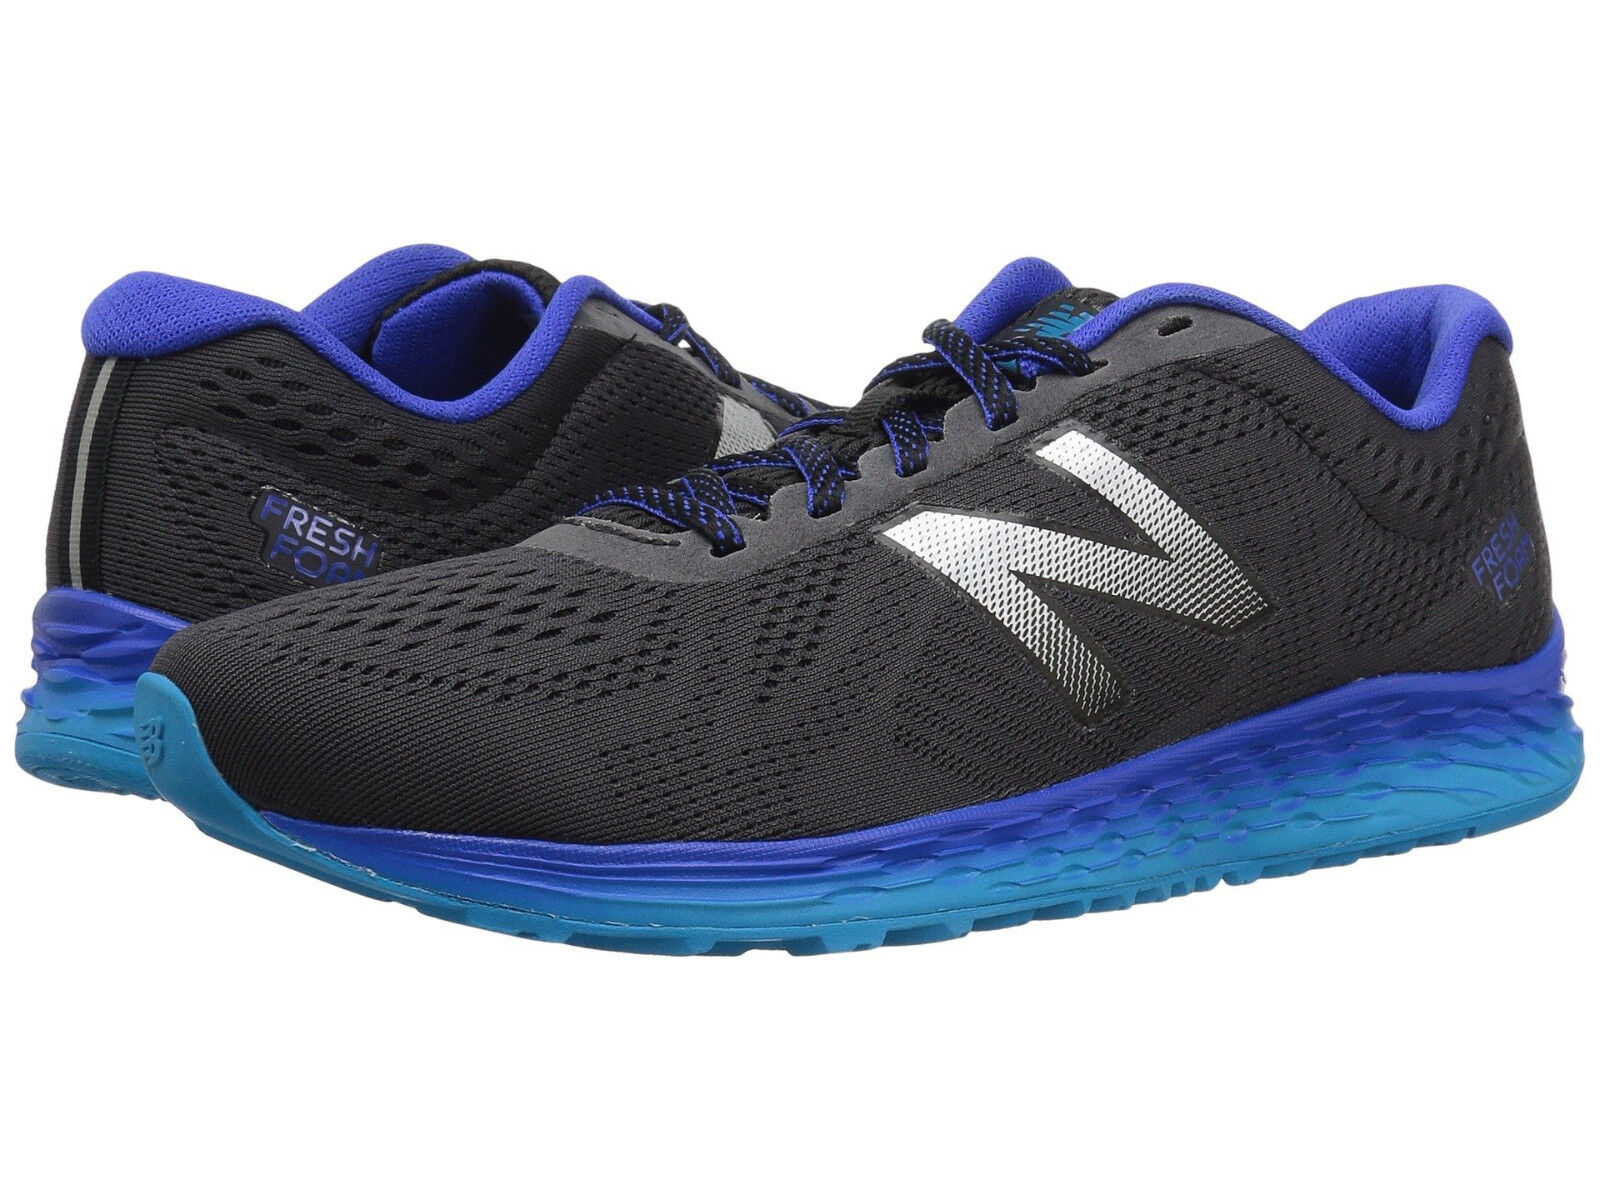 Homme New Balance MARIS v1 Running Medium (D) MARISCC1 Phantom Bleu Authentic